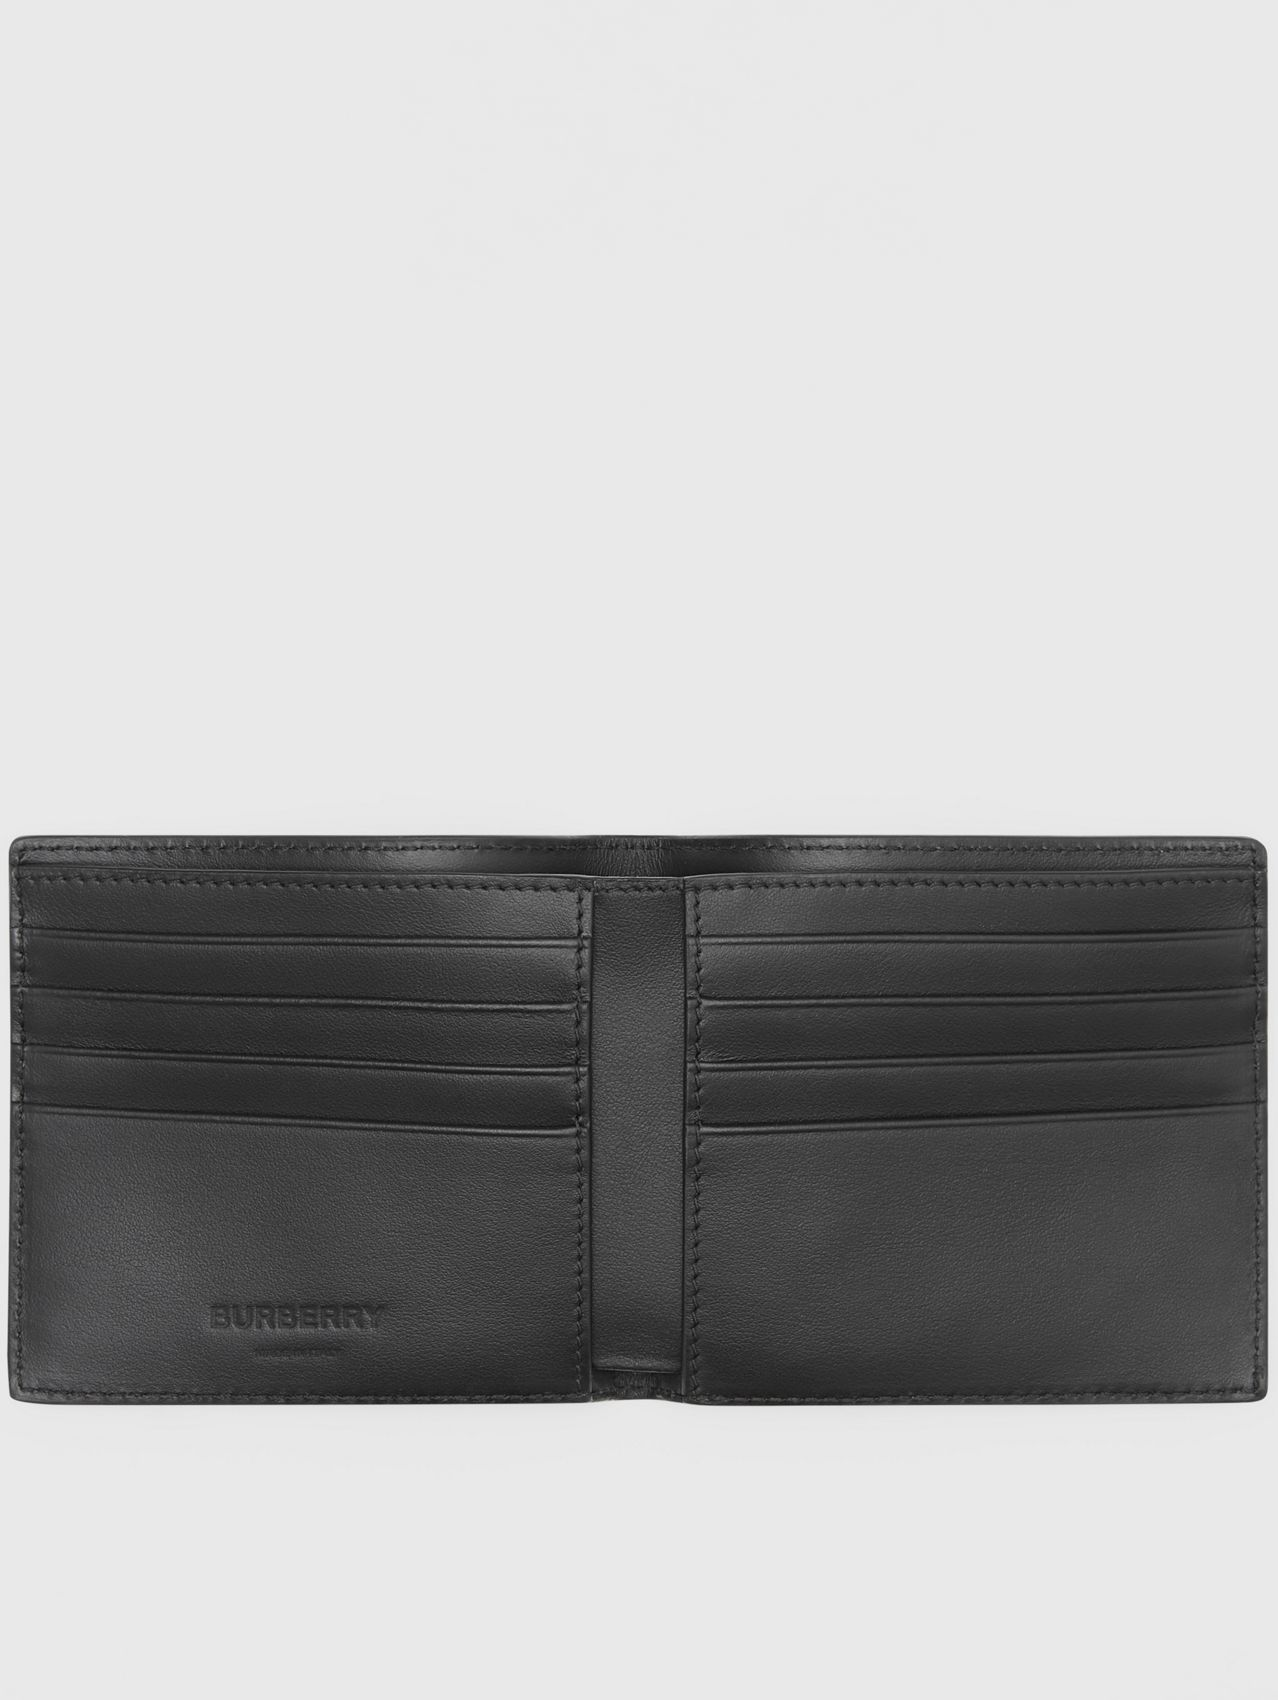 Symbol Print Leather International Bifold Wallet in Black